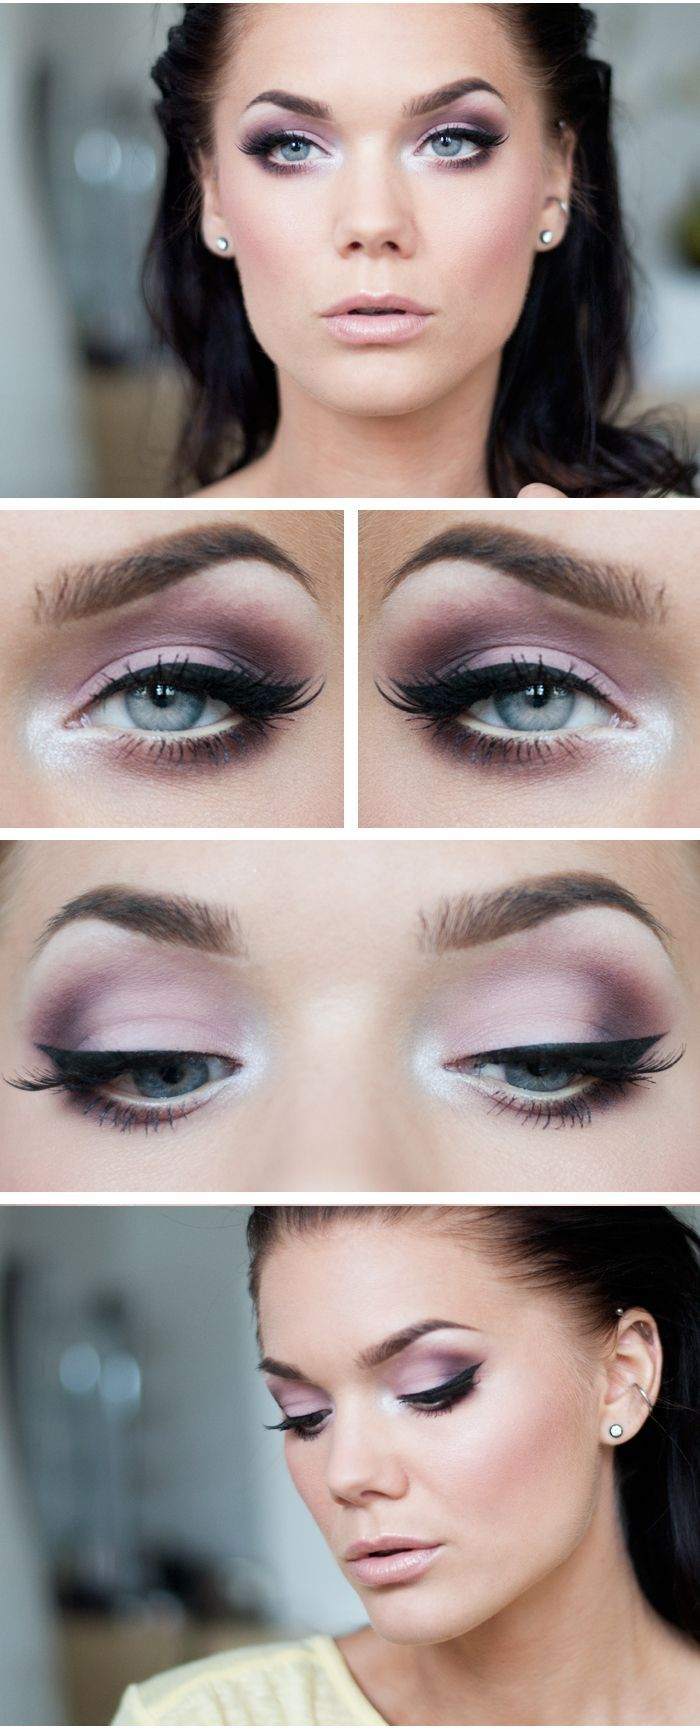 Maquillage - Make up